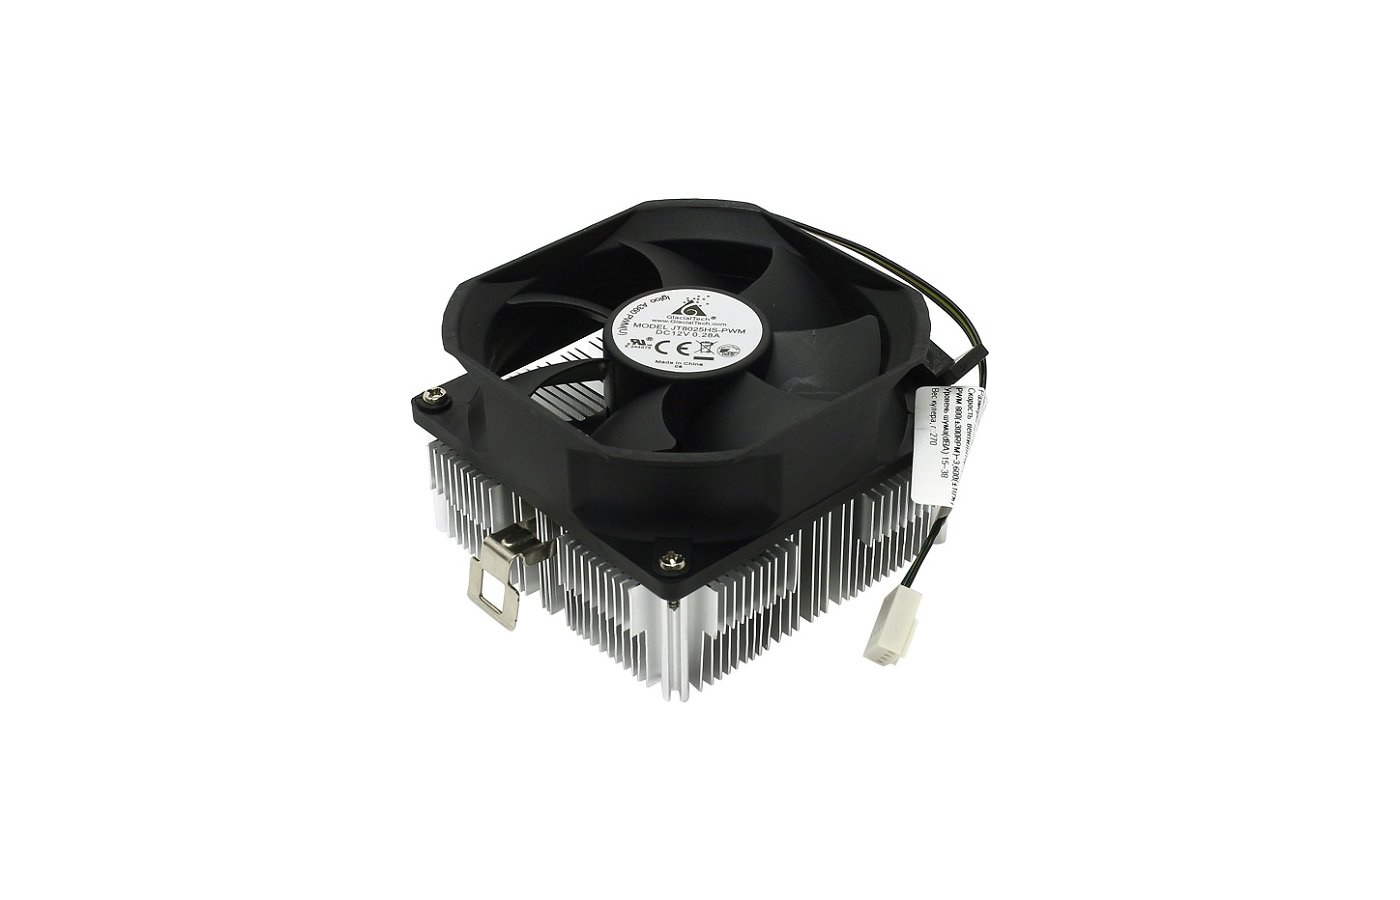 Охлаждение Glacialtech Igloo A360 PWM Soc-AMD/ 4pin 15-38dB Al 100W 270g скоба BULK